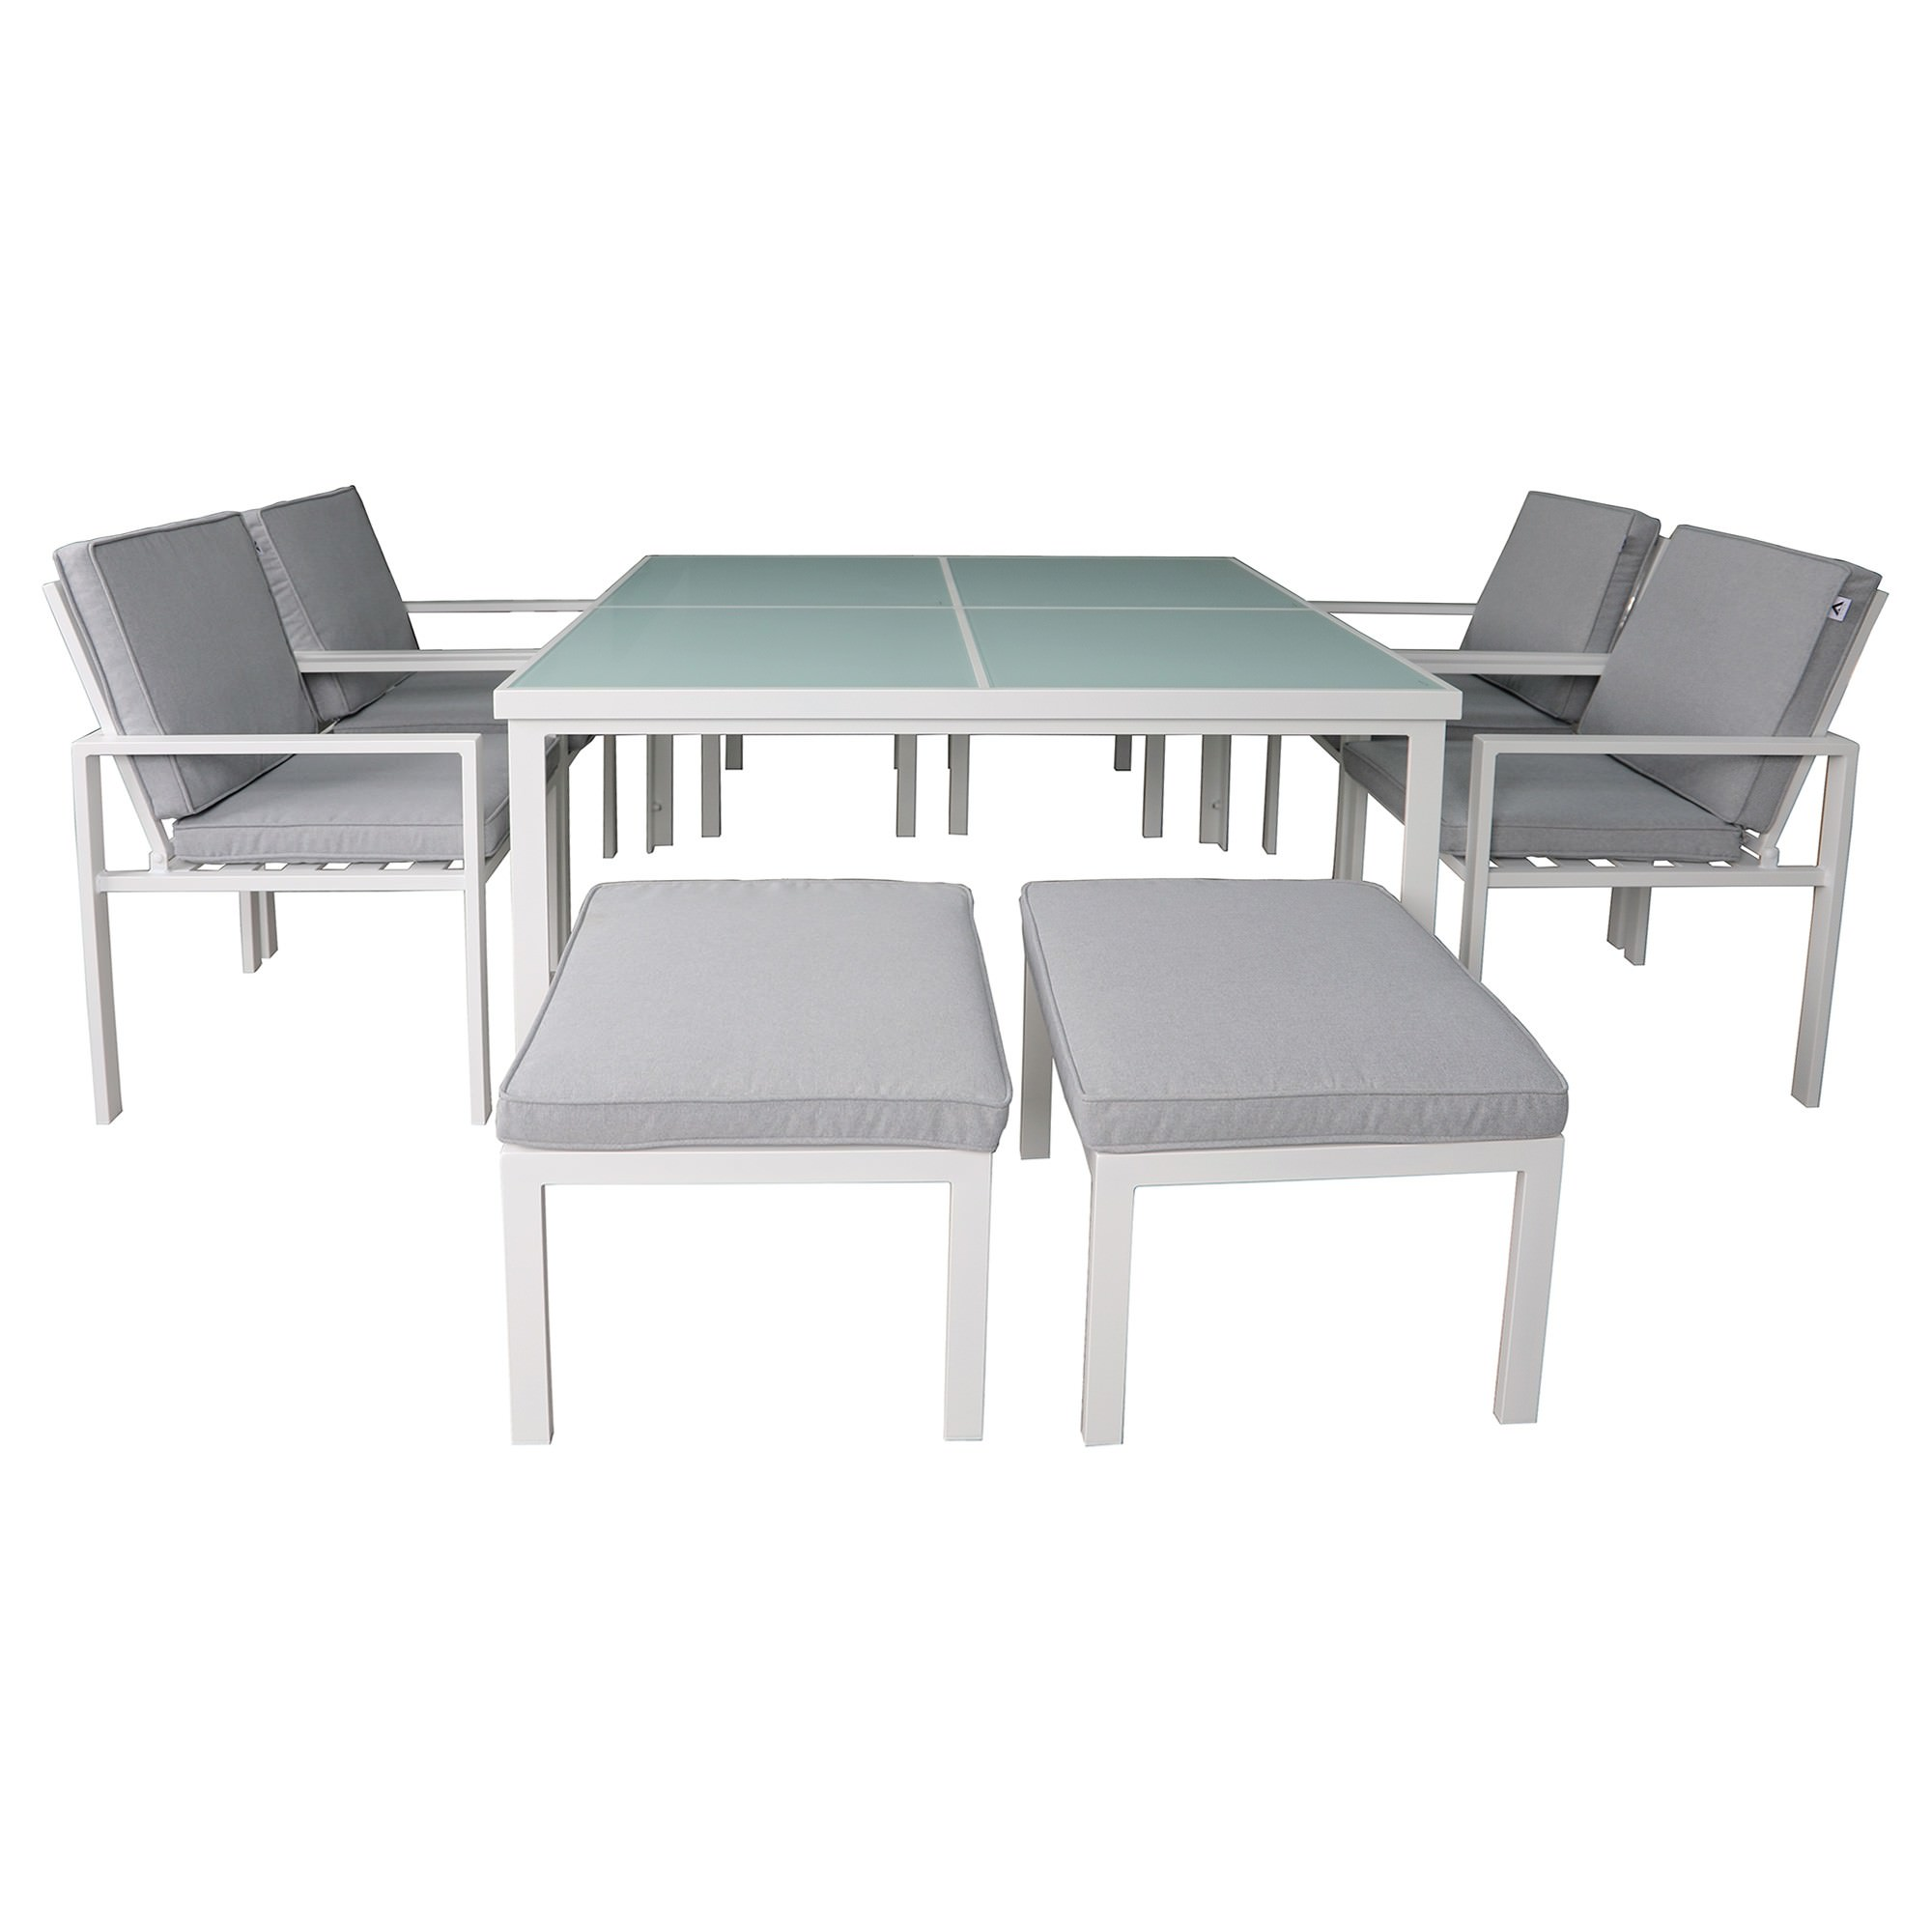 Roxburgh 9 Piece Outdoor Dining Table Set, White